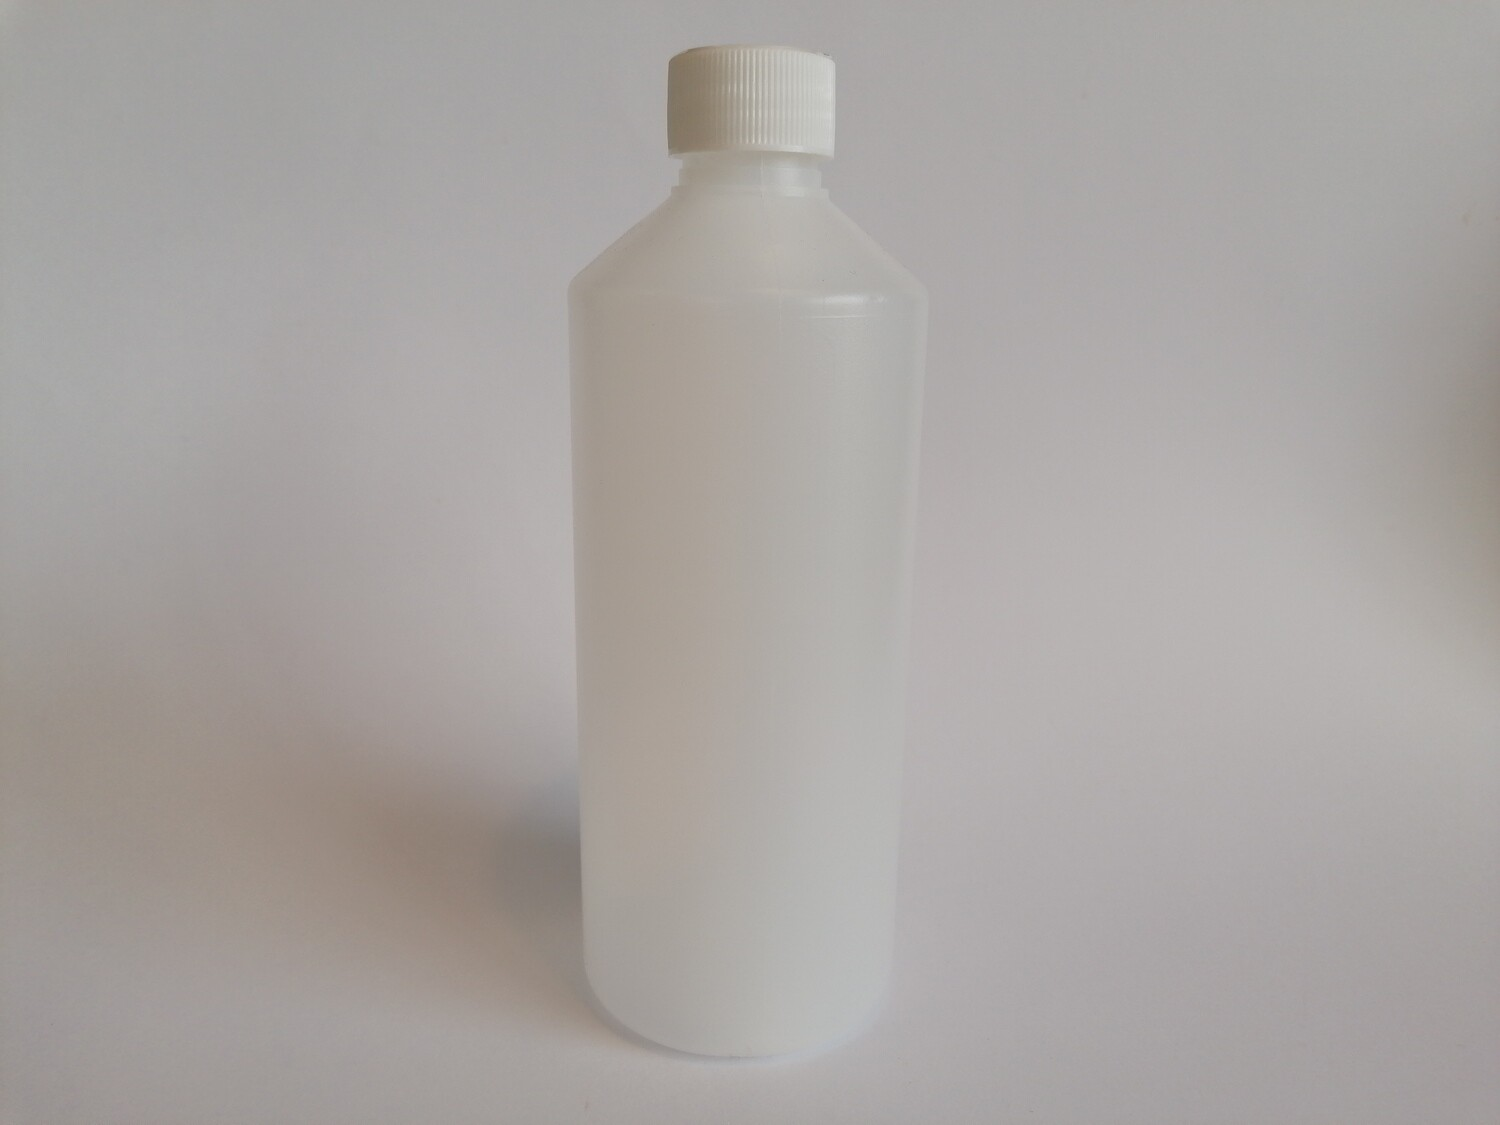 500ml Plastic Screw Top Bottle